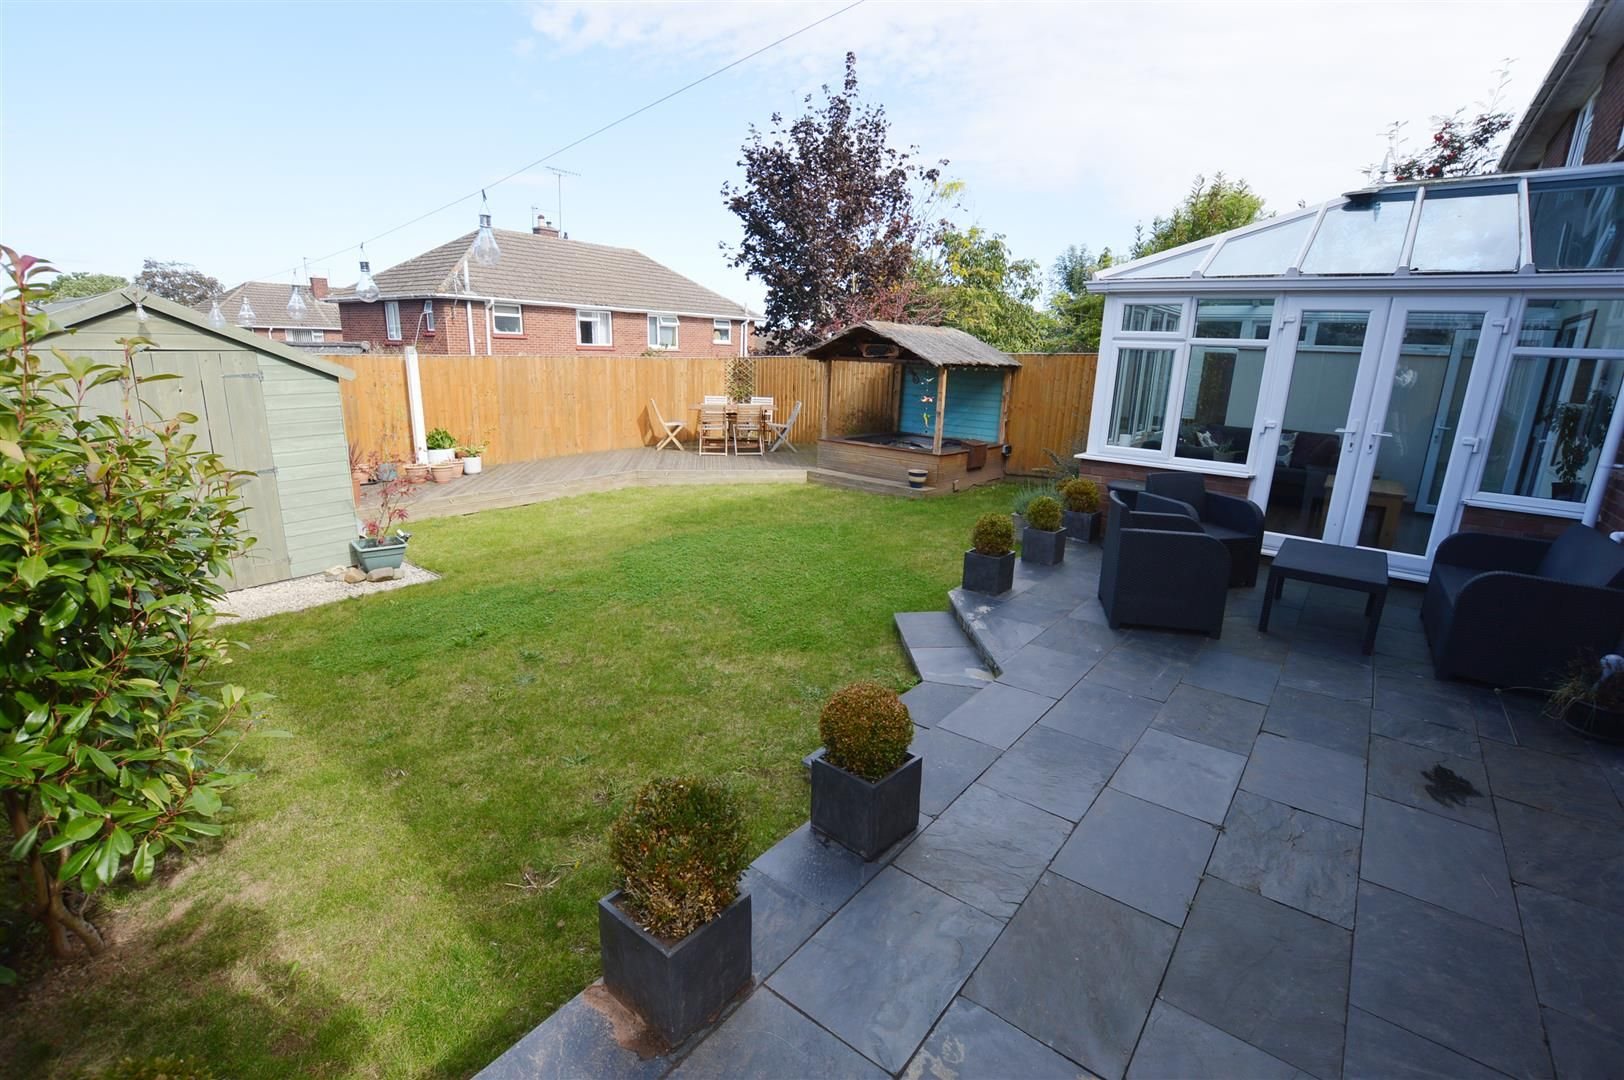 4 bed semi-detached for sale in Hereford 10